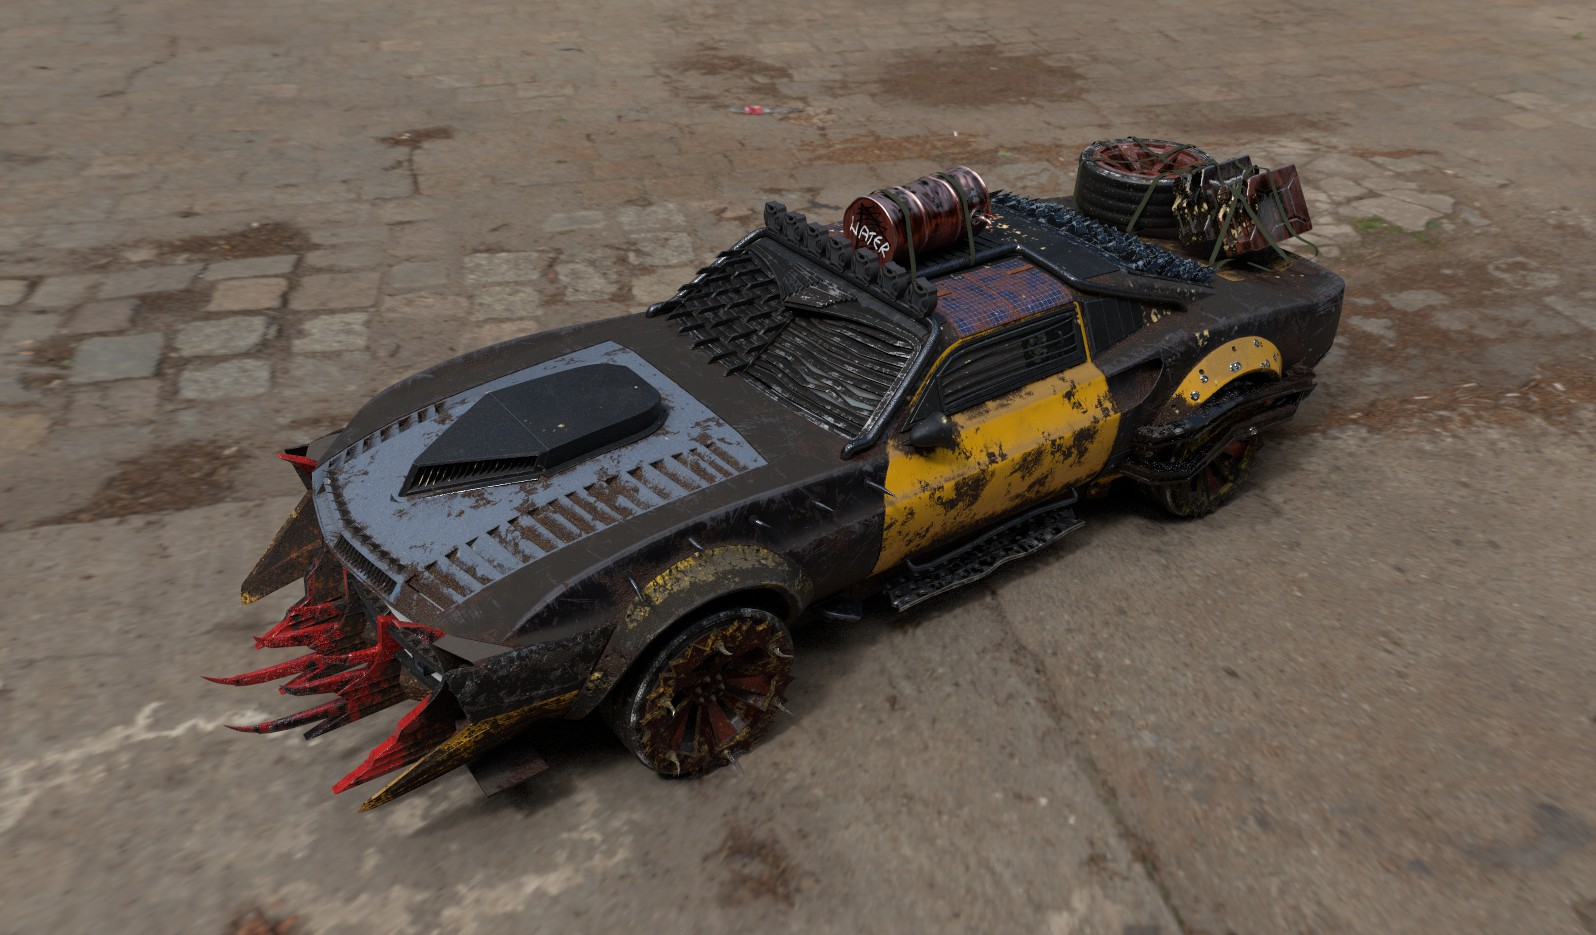 Post-Apo Car challenge 2018 - based on Mustang RTR-X